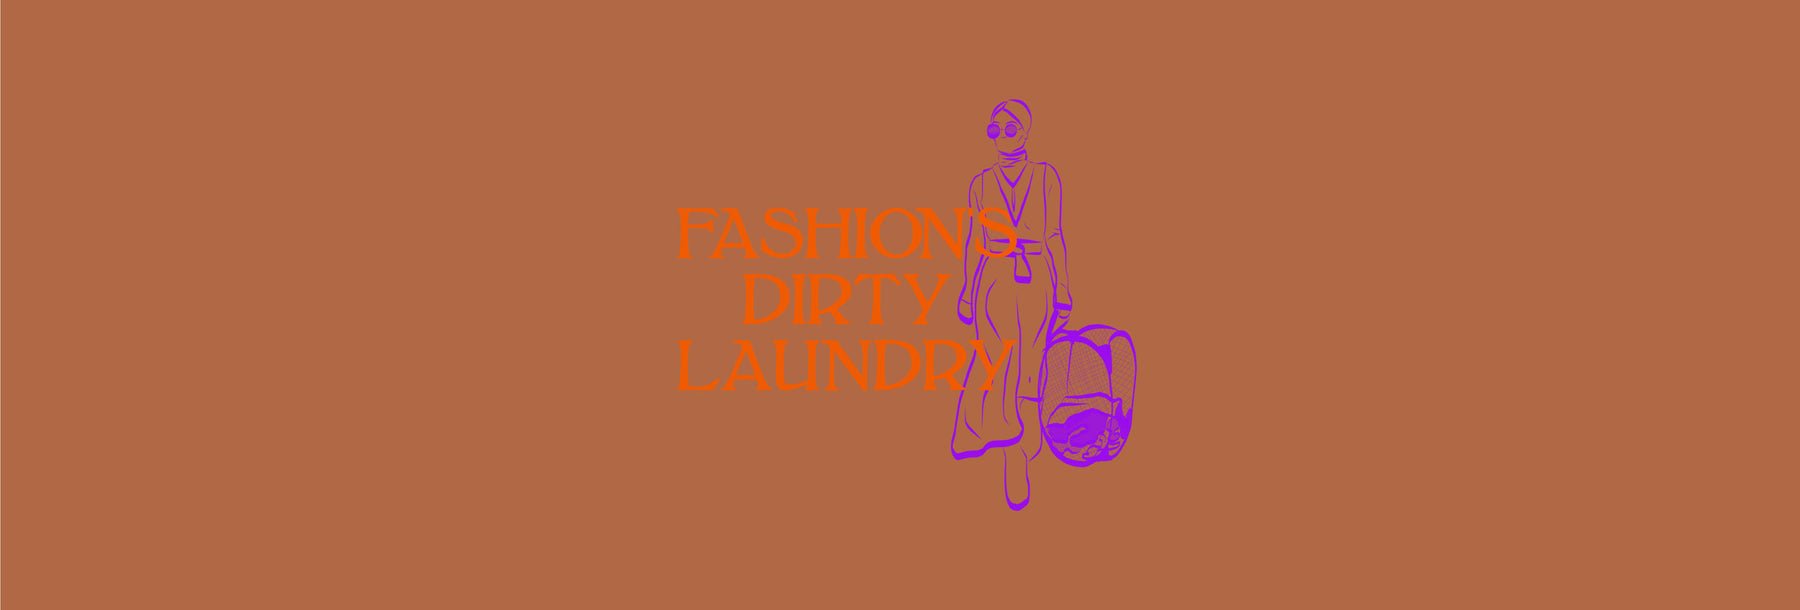 Fashion's Laundry List of Problems: Fast Fashion and Over Consumption